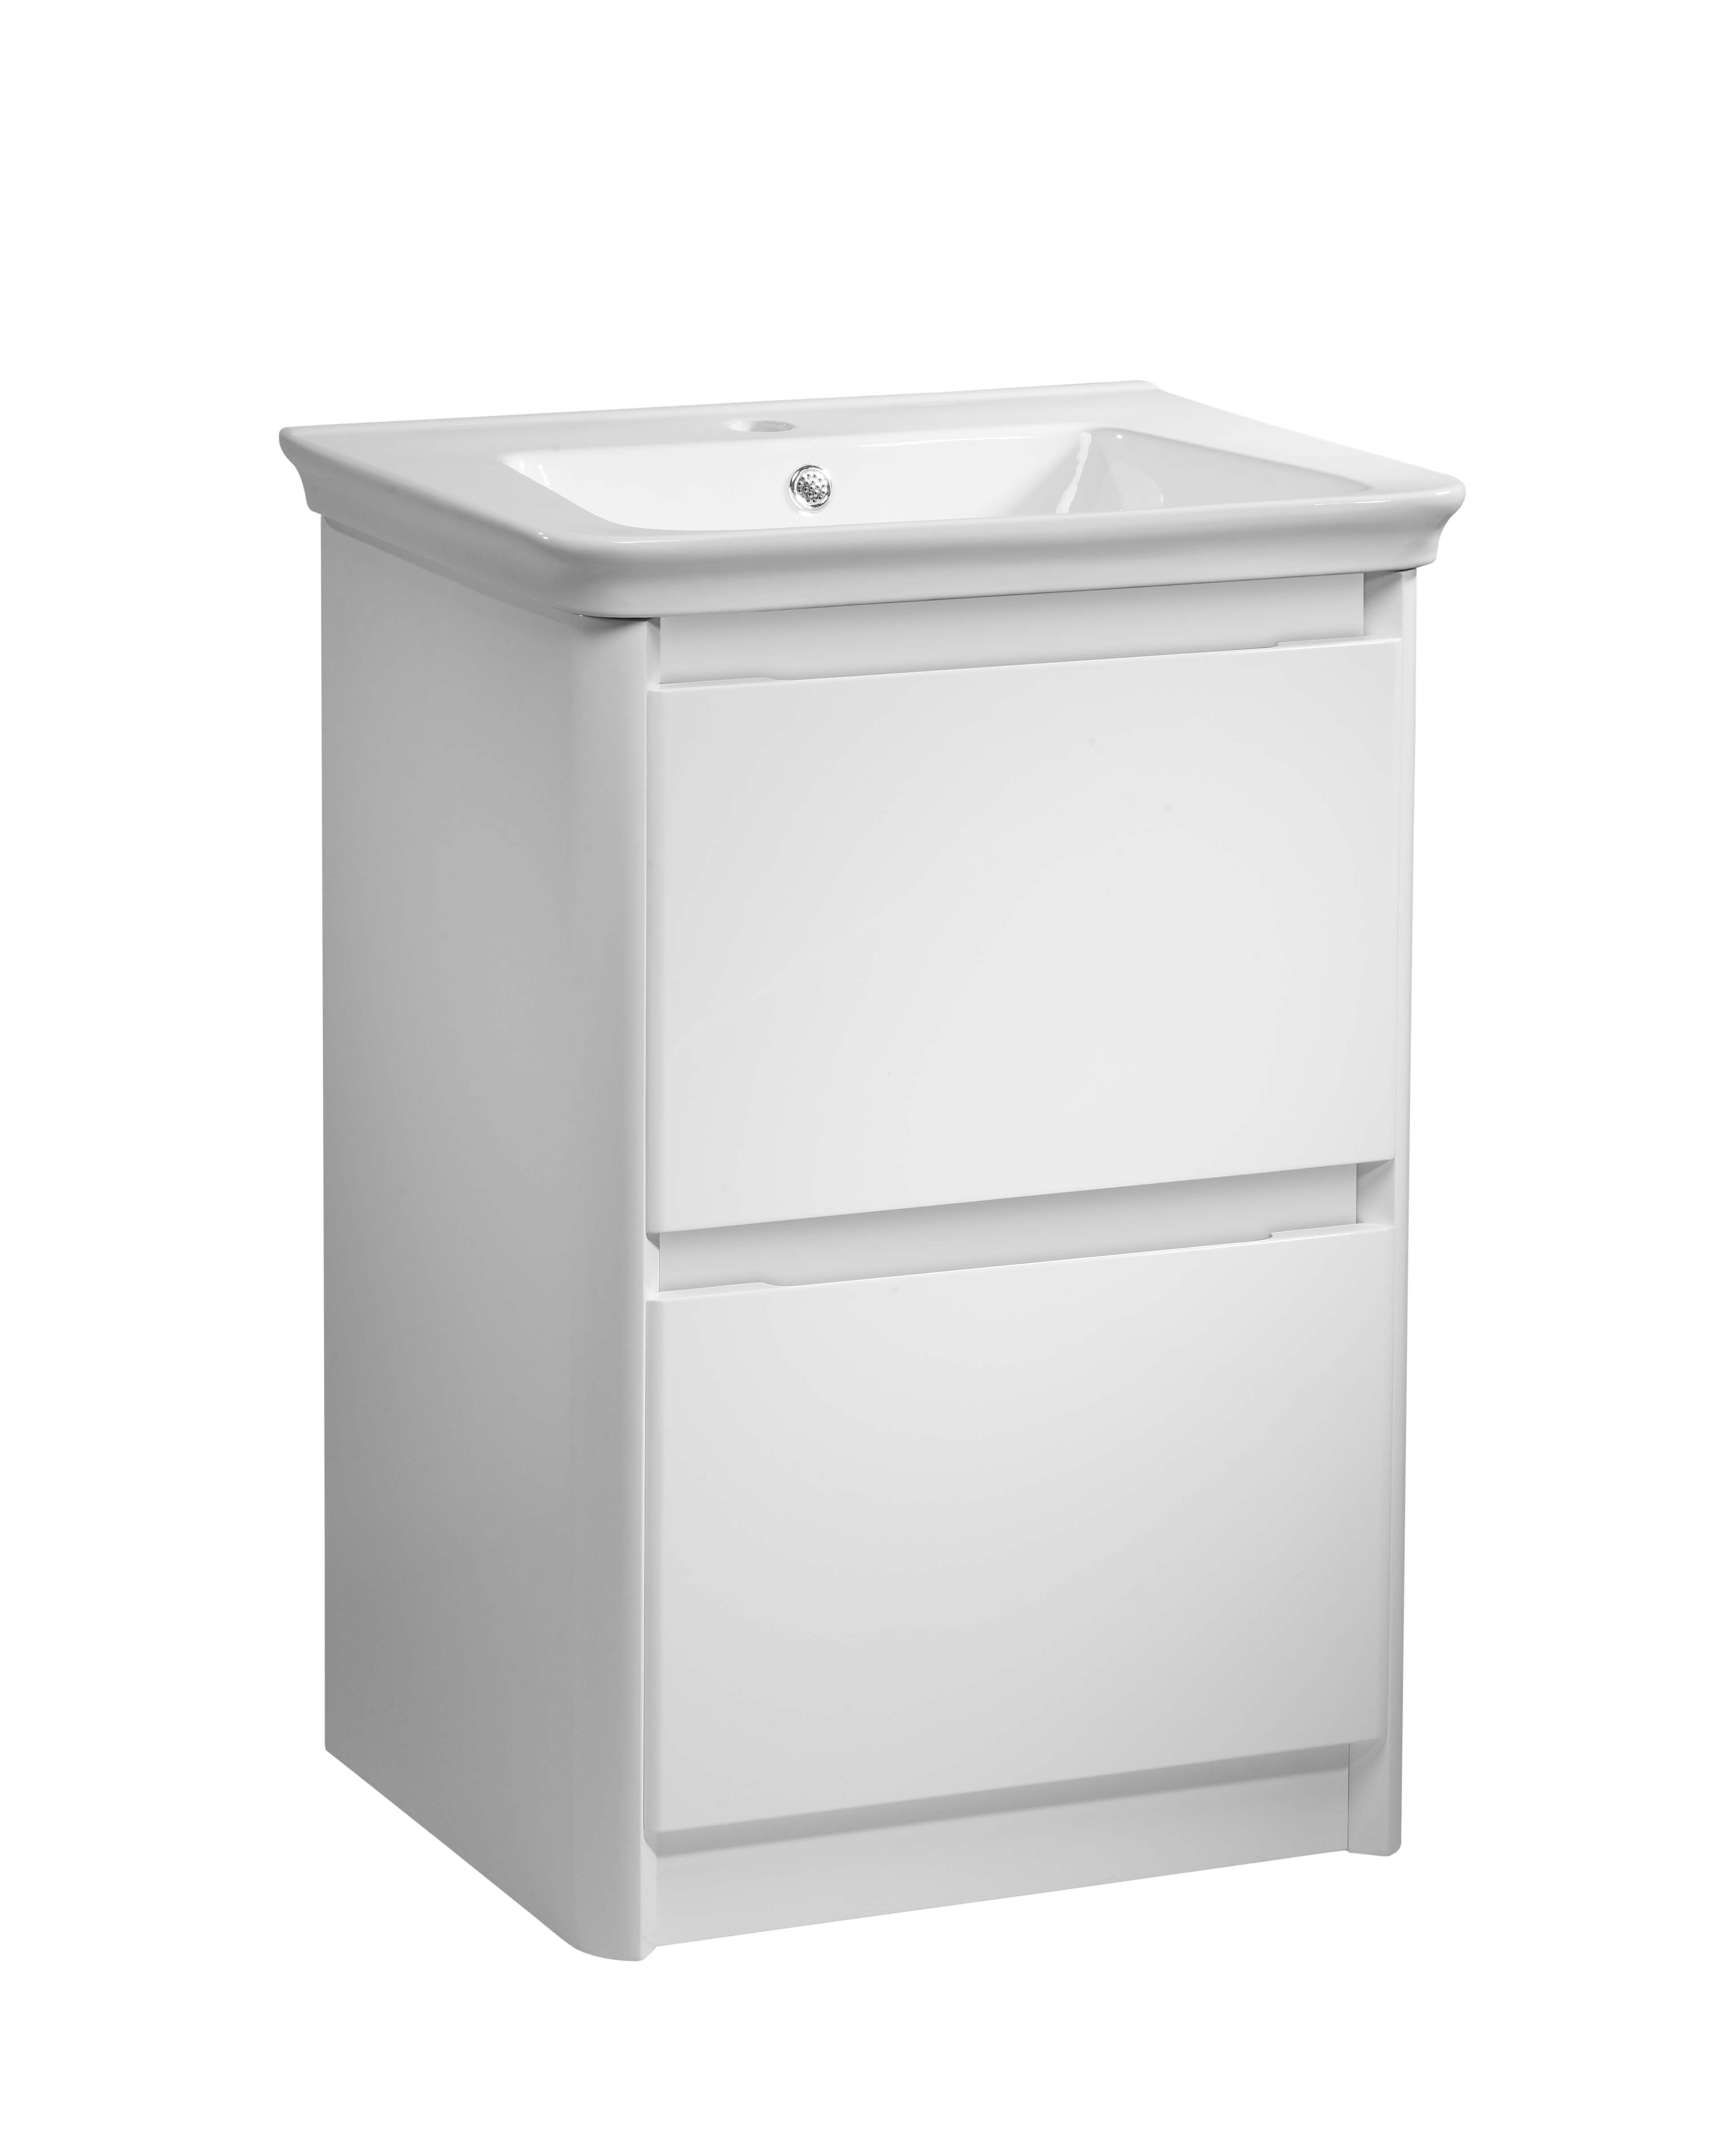 click on 60cm Floor Standing Vanity Unit with Drawers image to enlarge